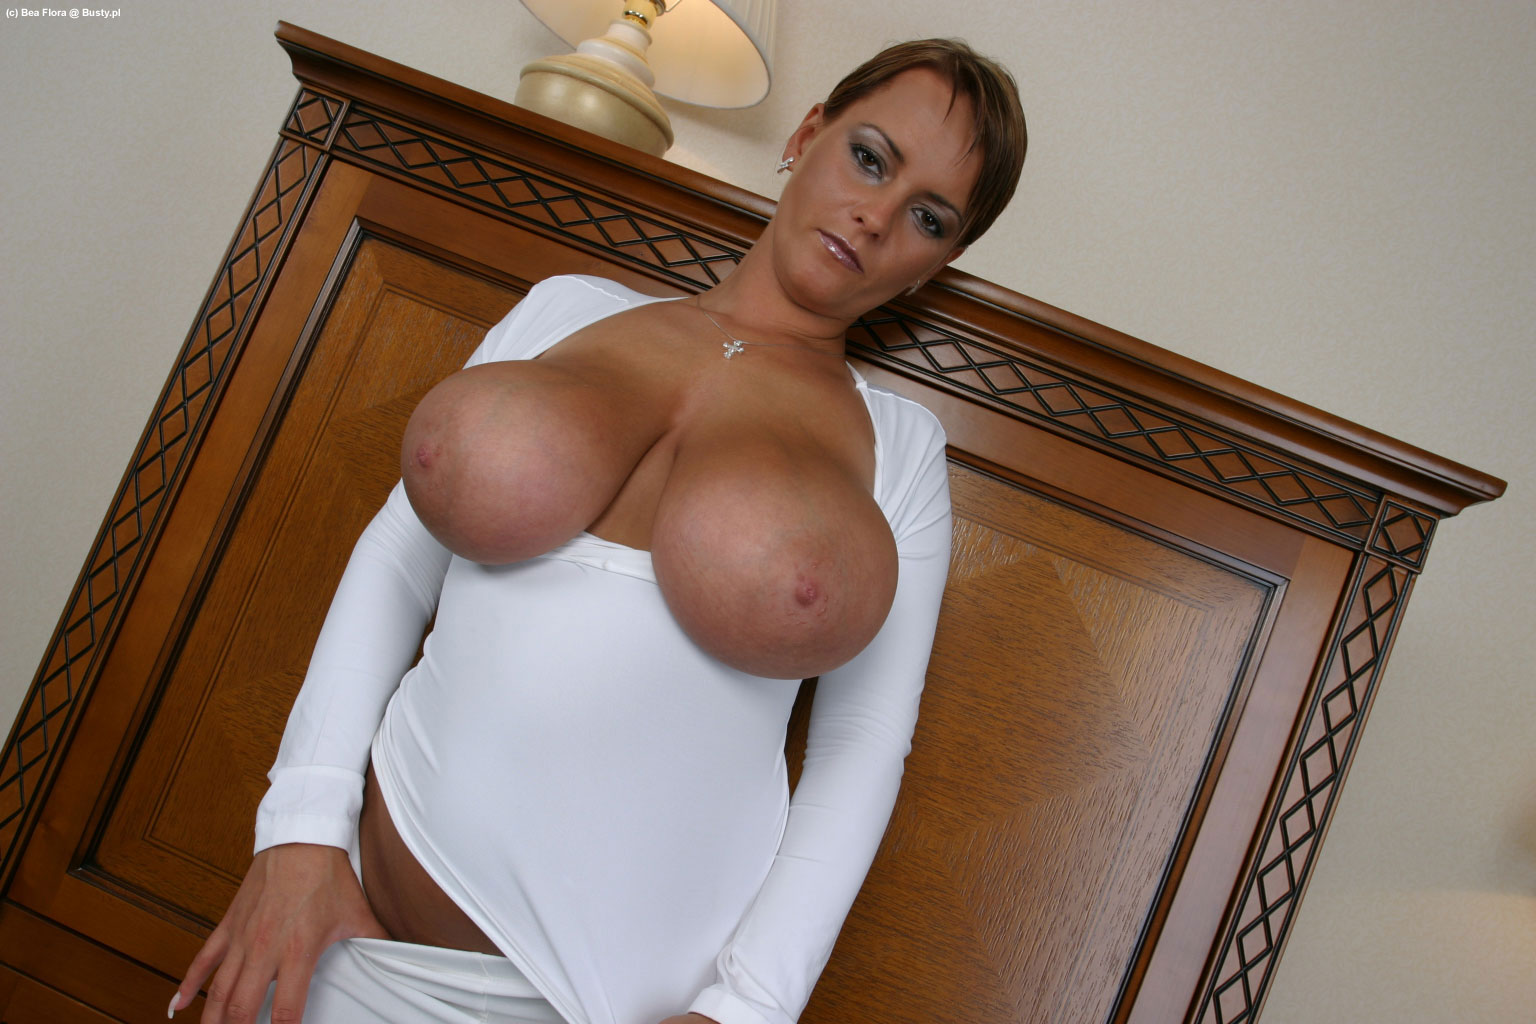 Looks busty gallery polish sins would